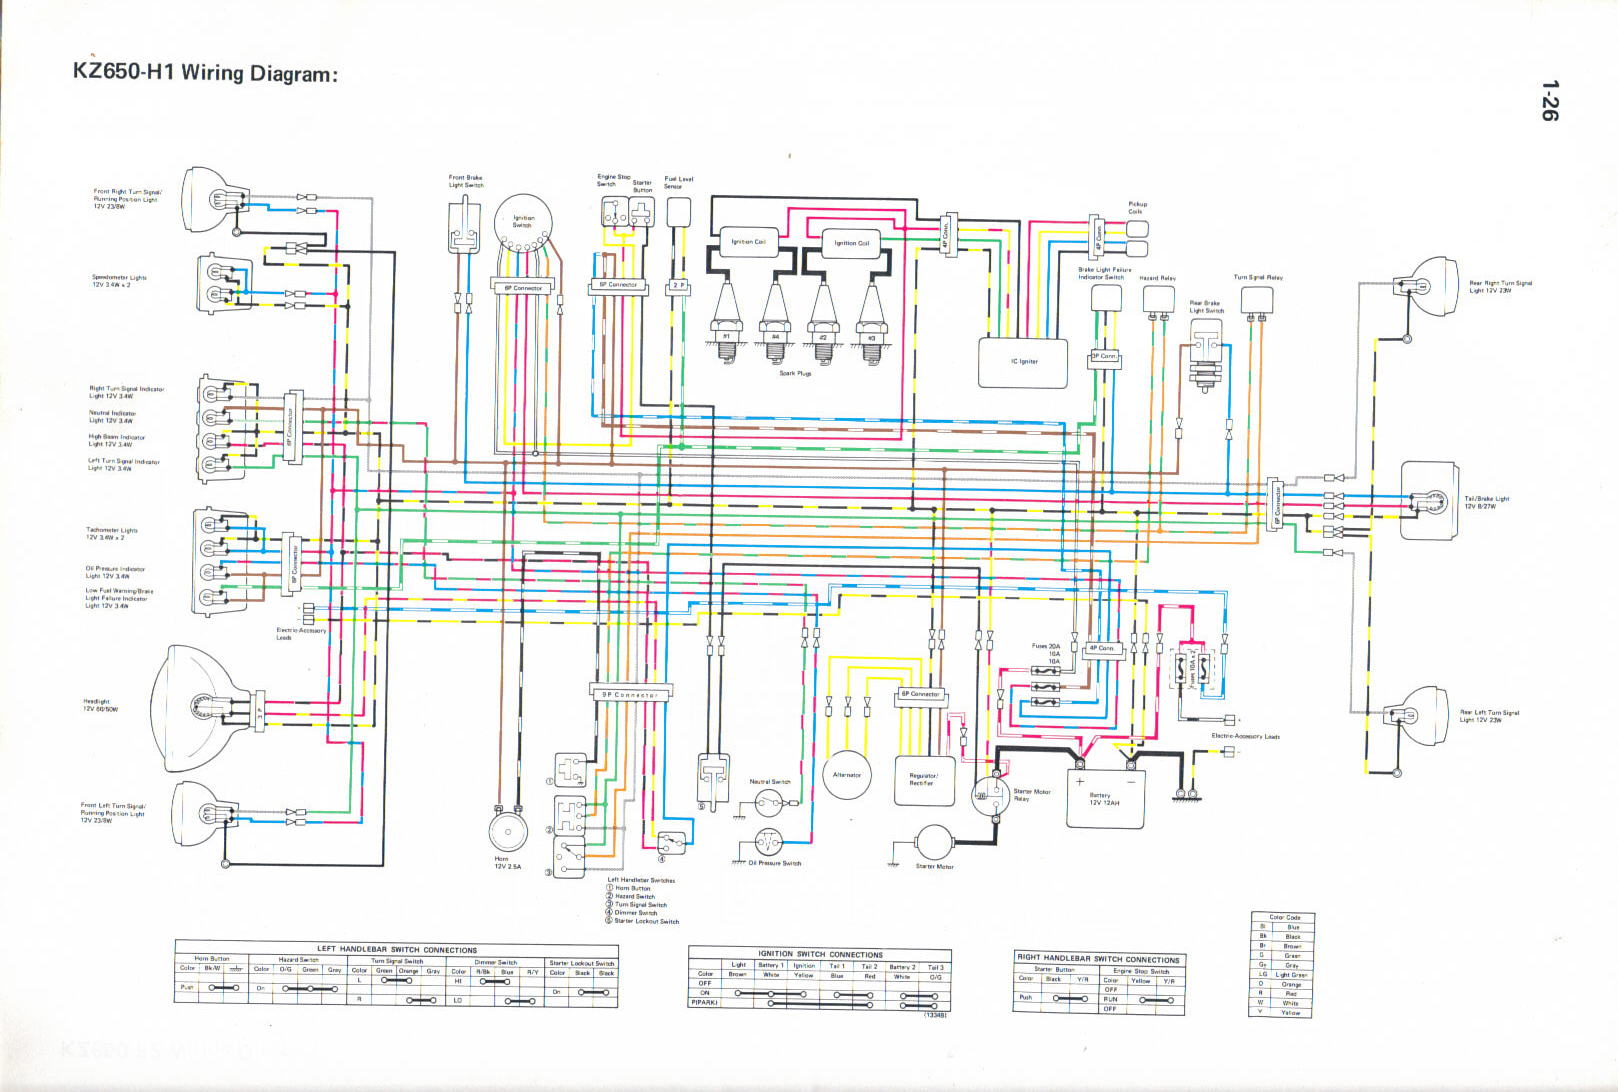 hight resolution of e1 wiring diagram simple wiring schema hvac wiring diagrams e1 wiring diagram